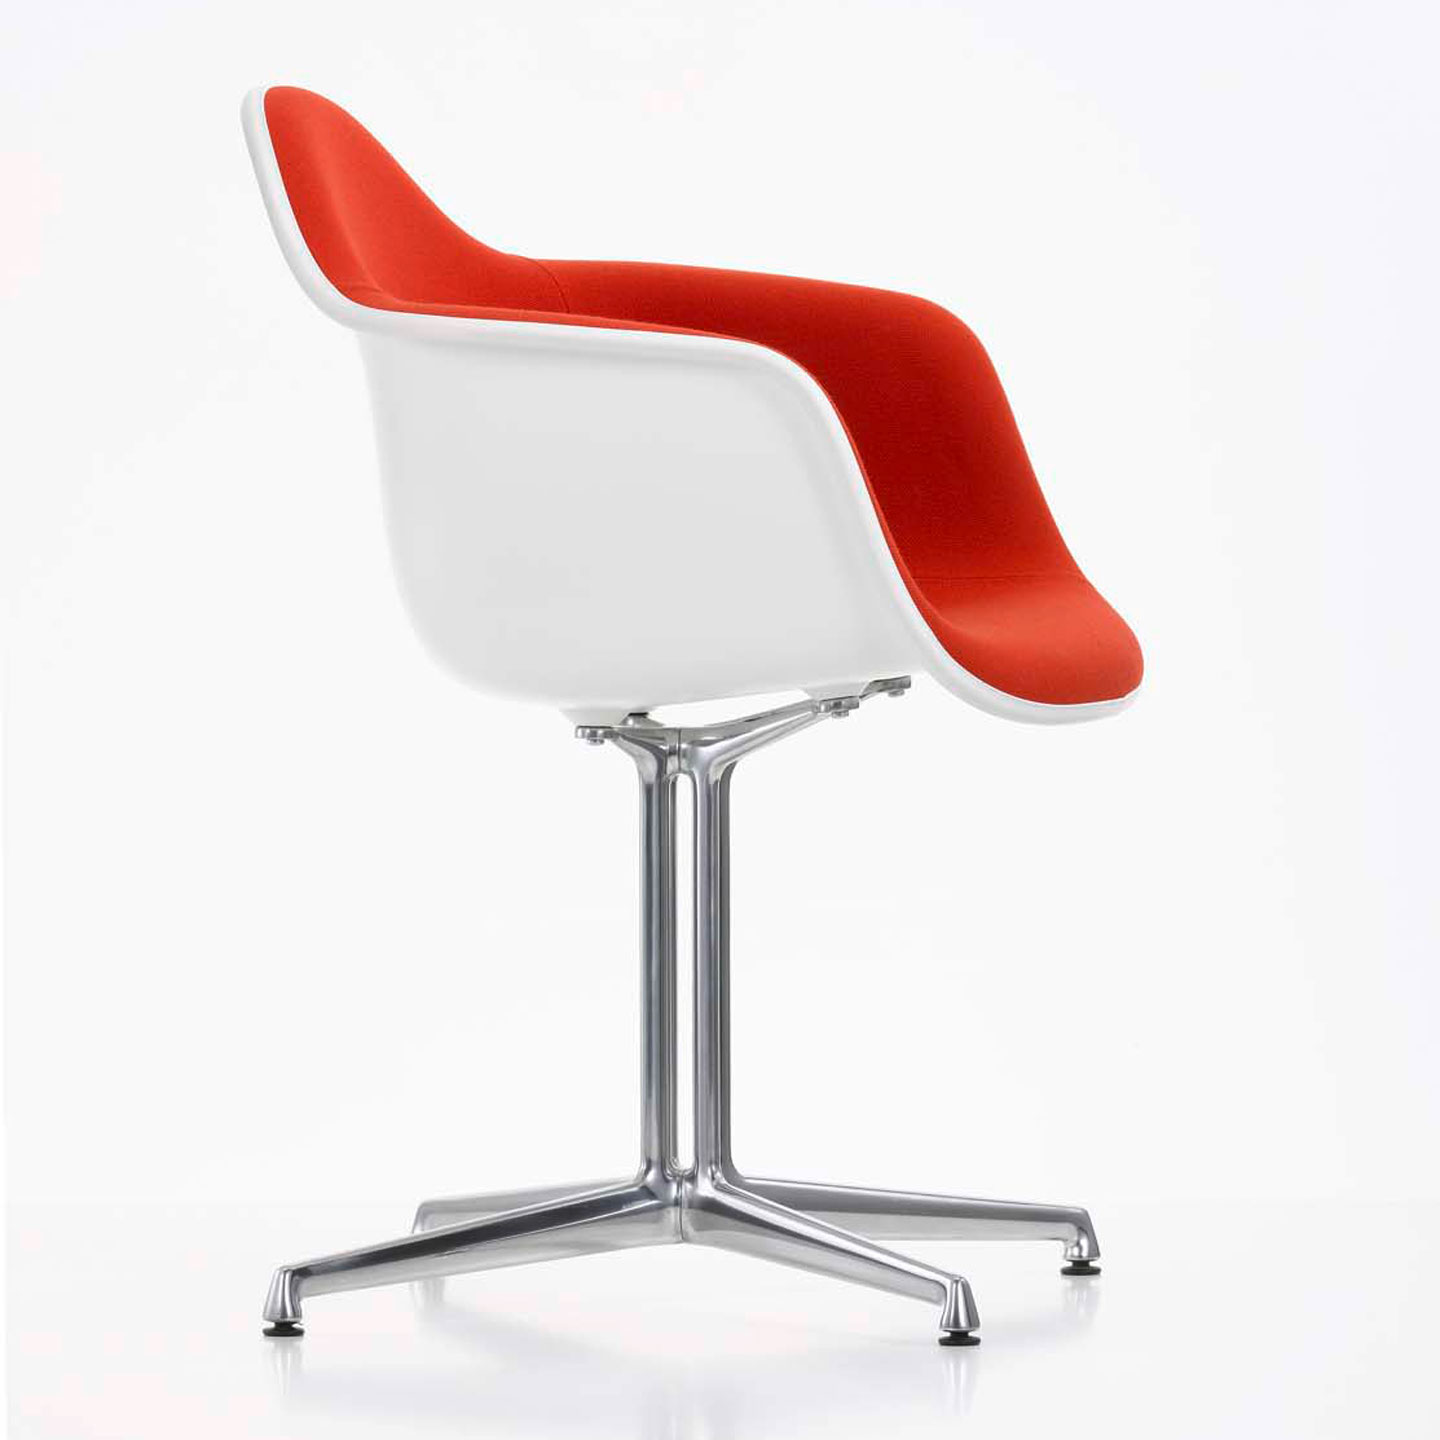 DAL Eames Upholstered Armchair